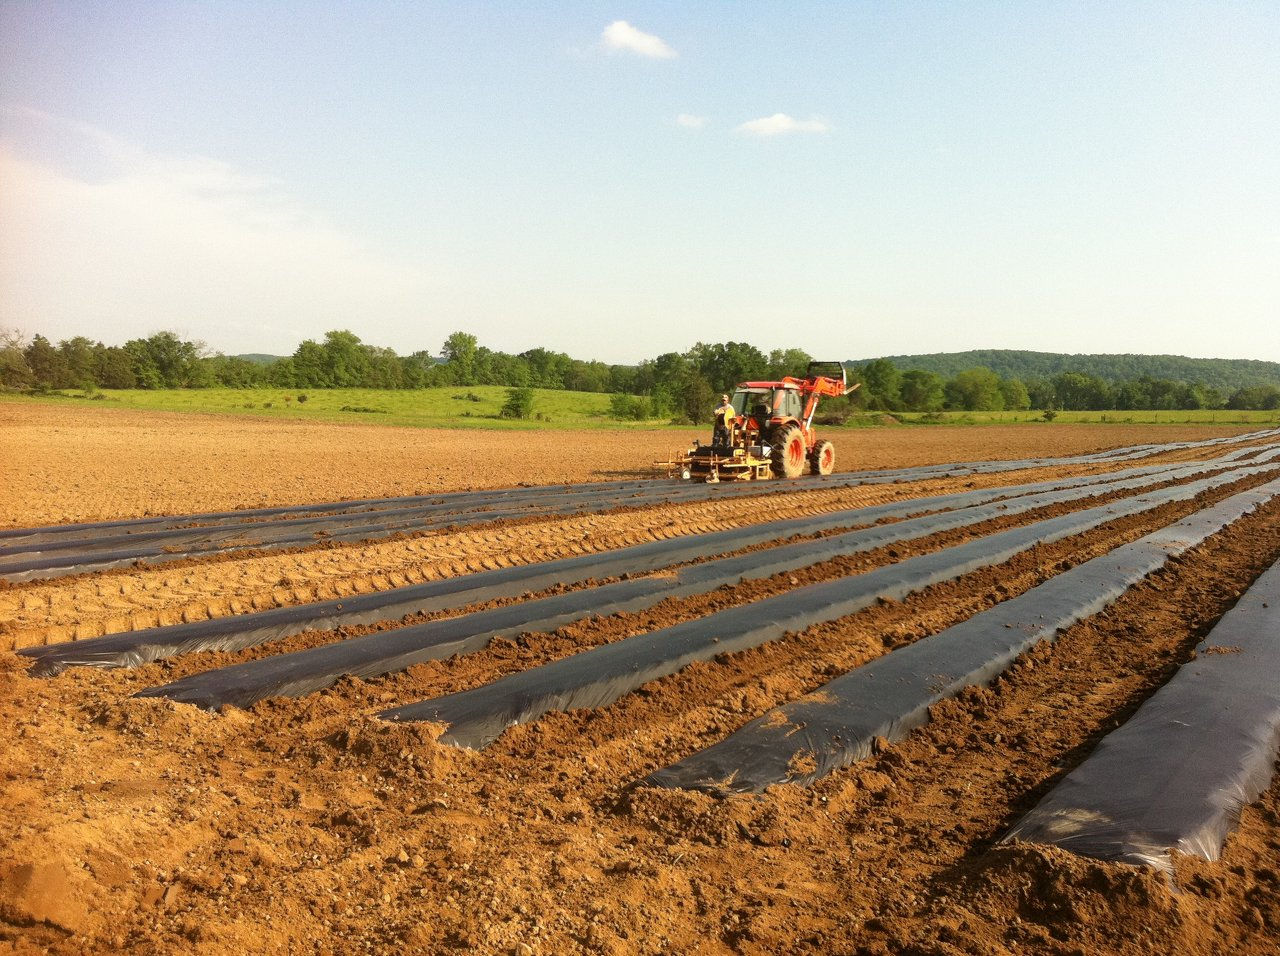 STARTING THE VEGETABLE FIELDS